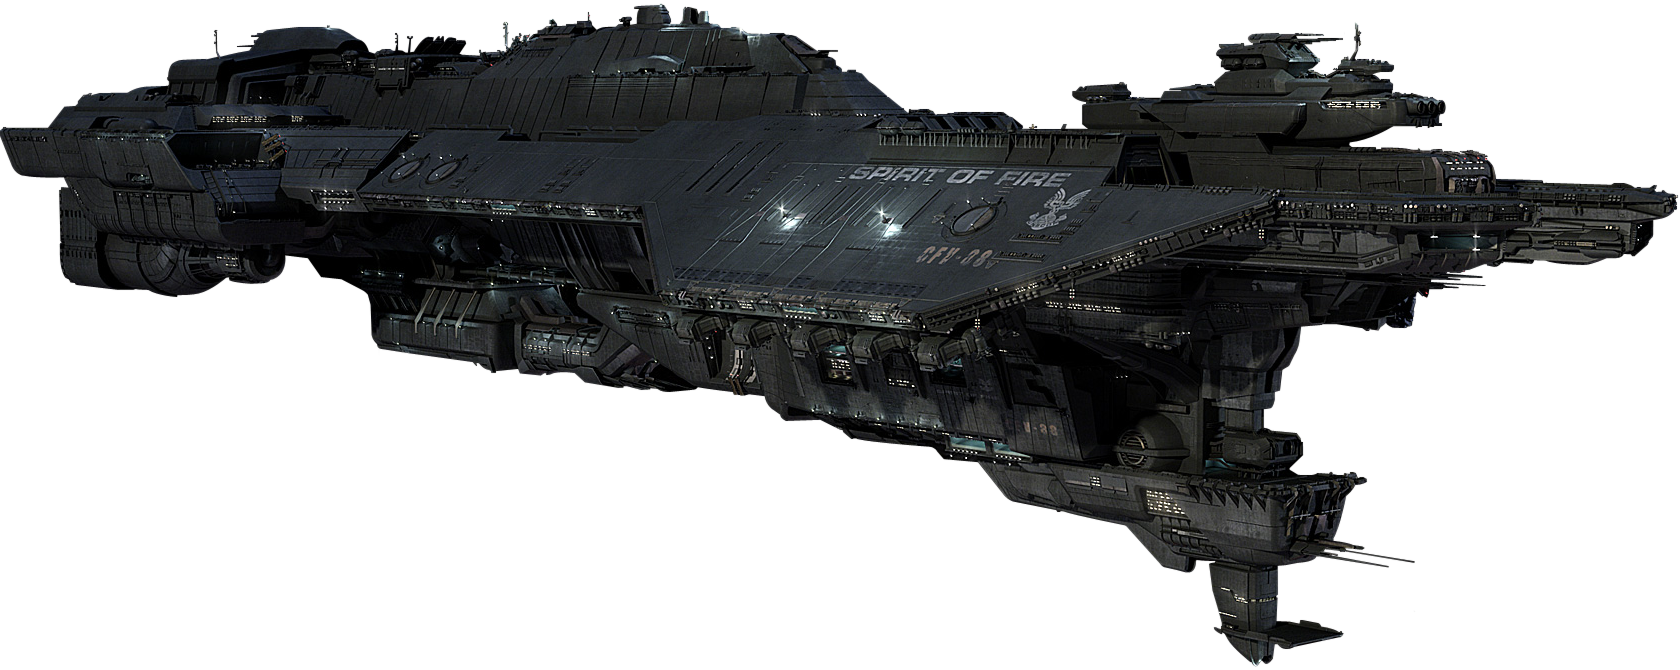 United Federation of Red Sun Systems UNSC_Spirit_of_Fire_(CFV-88)